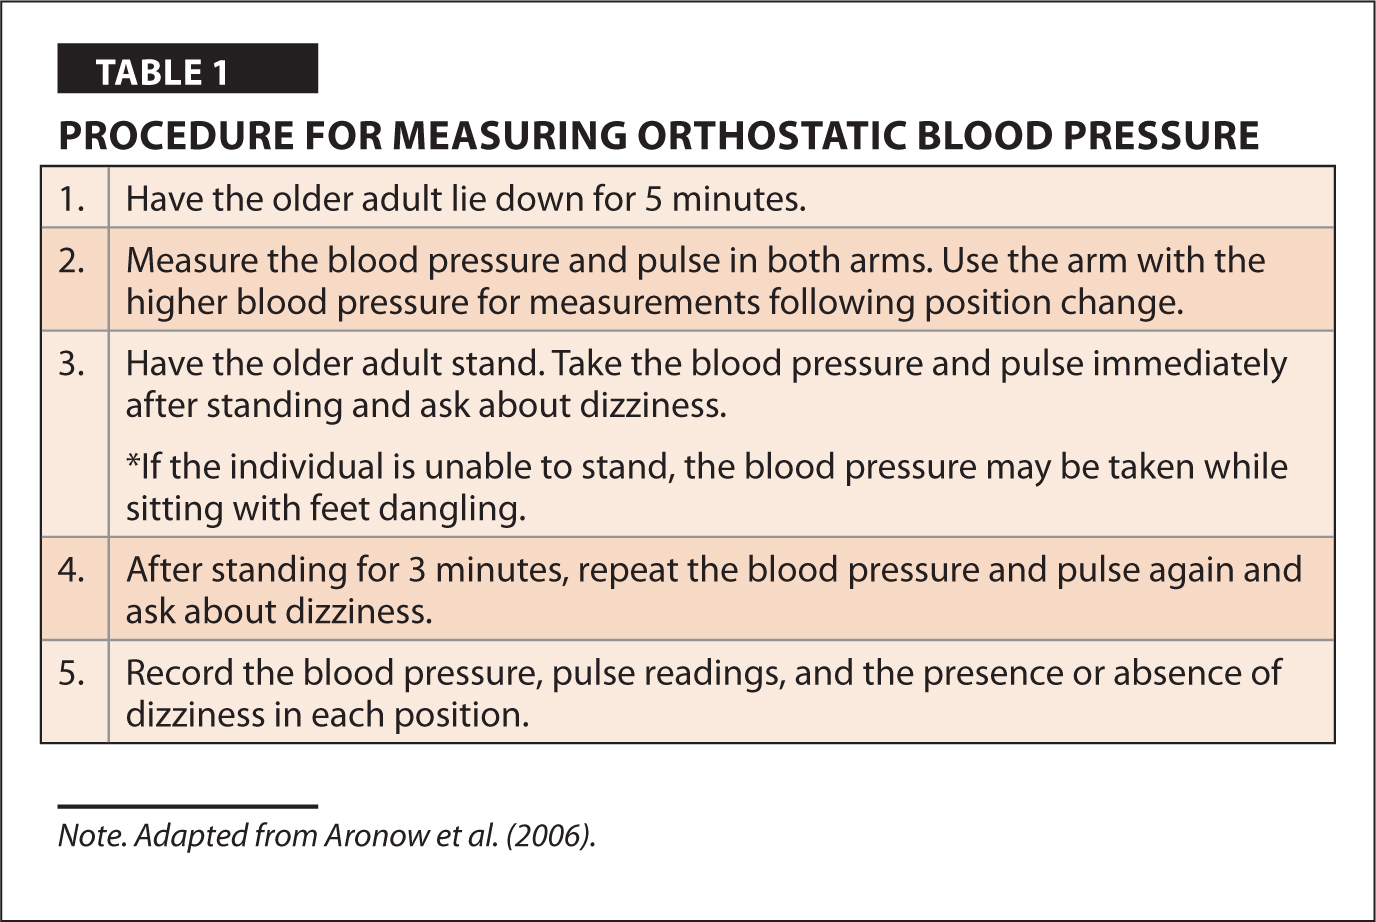 Procedure for Measuring Orthostatic Blood Pressure